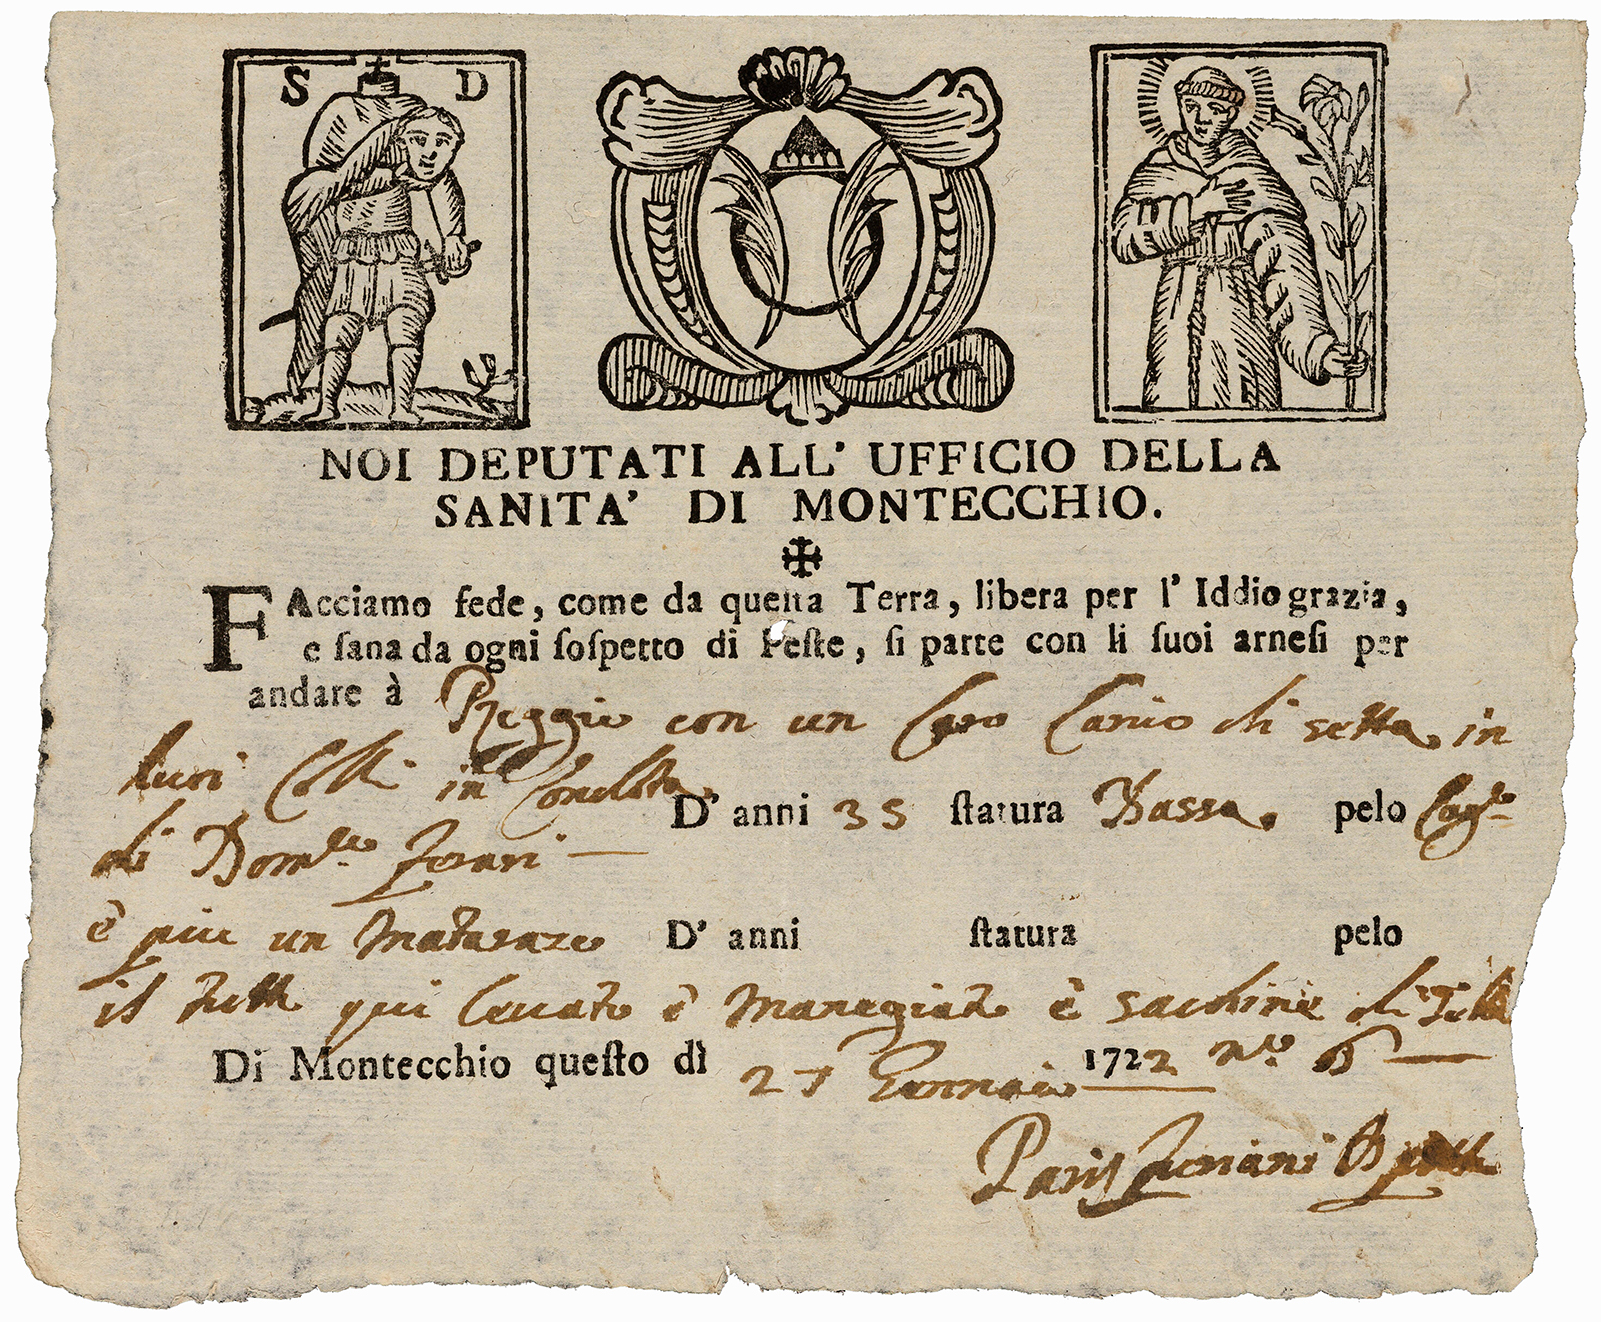 Old printed and handwritten certificate with small images